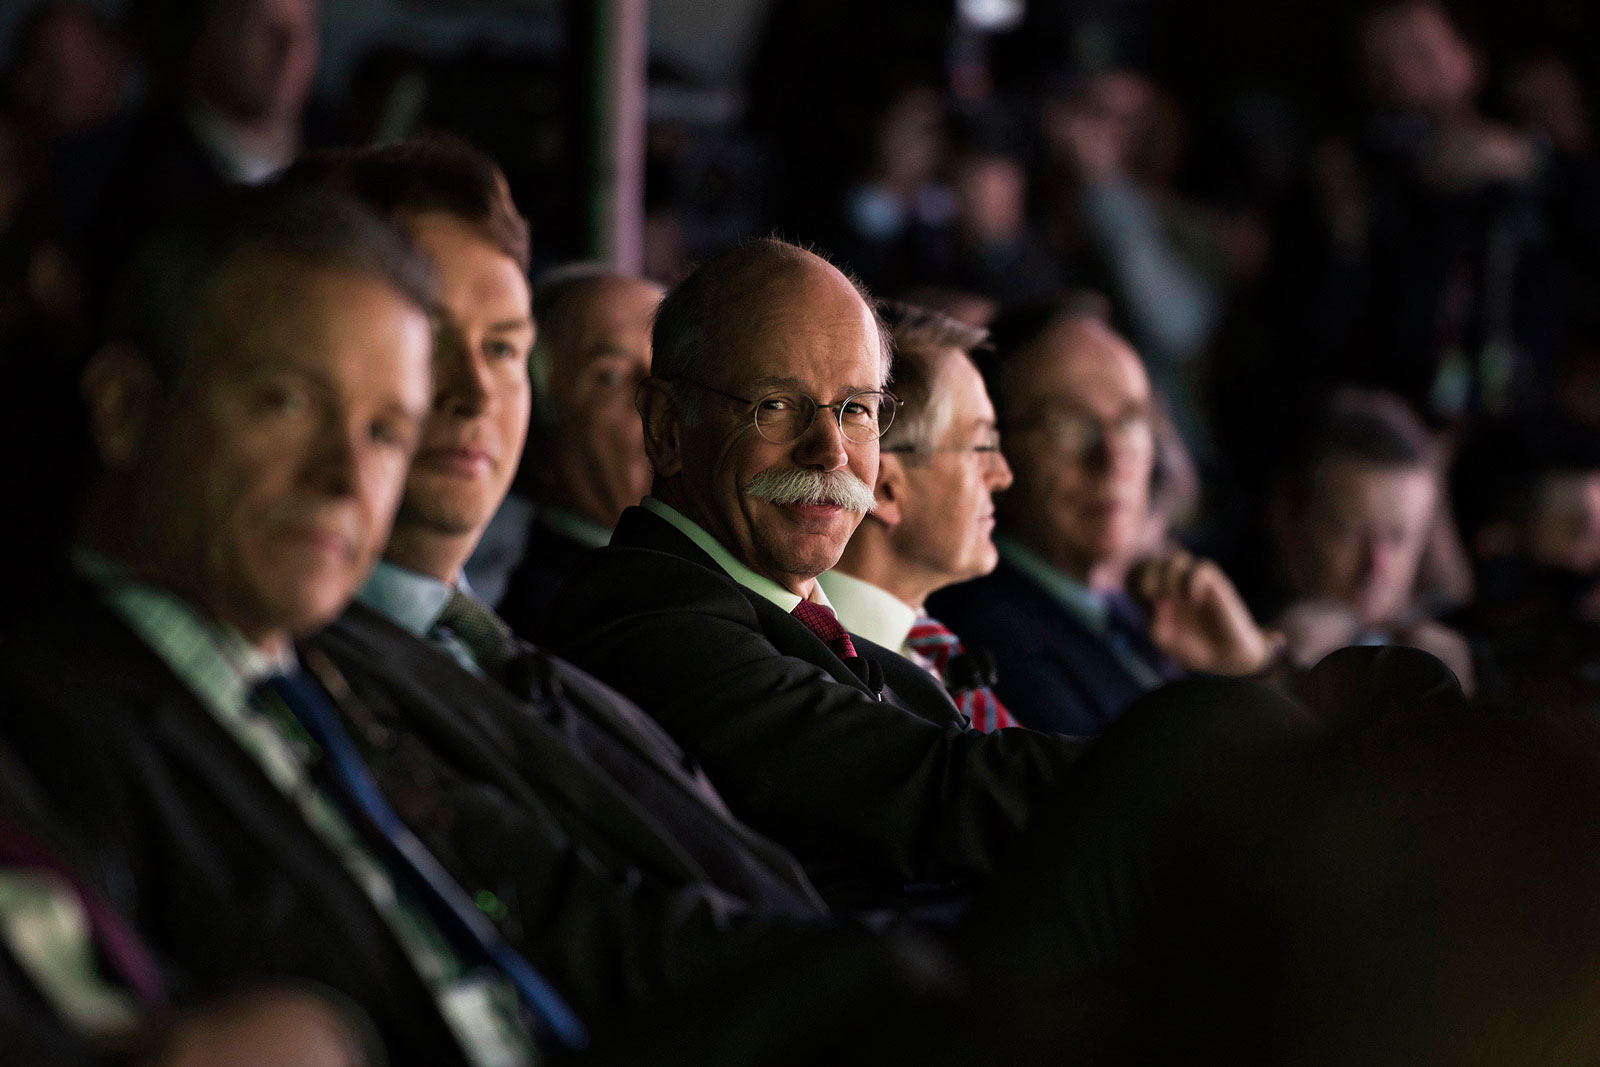 Dieter Zetsche, chief executive officer of Daimler, reacts while sitting in the audience during a Mercedes-Benz event ahead of the 2015 North American International Auto Show in Detroit